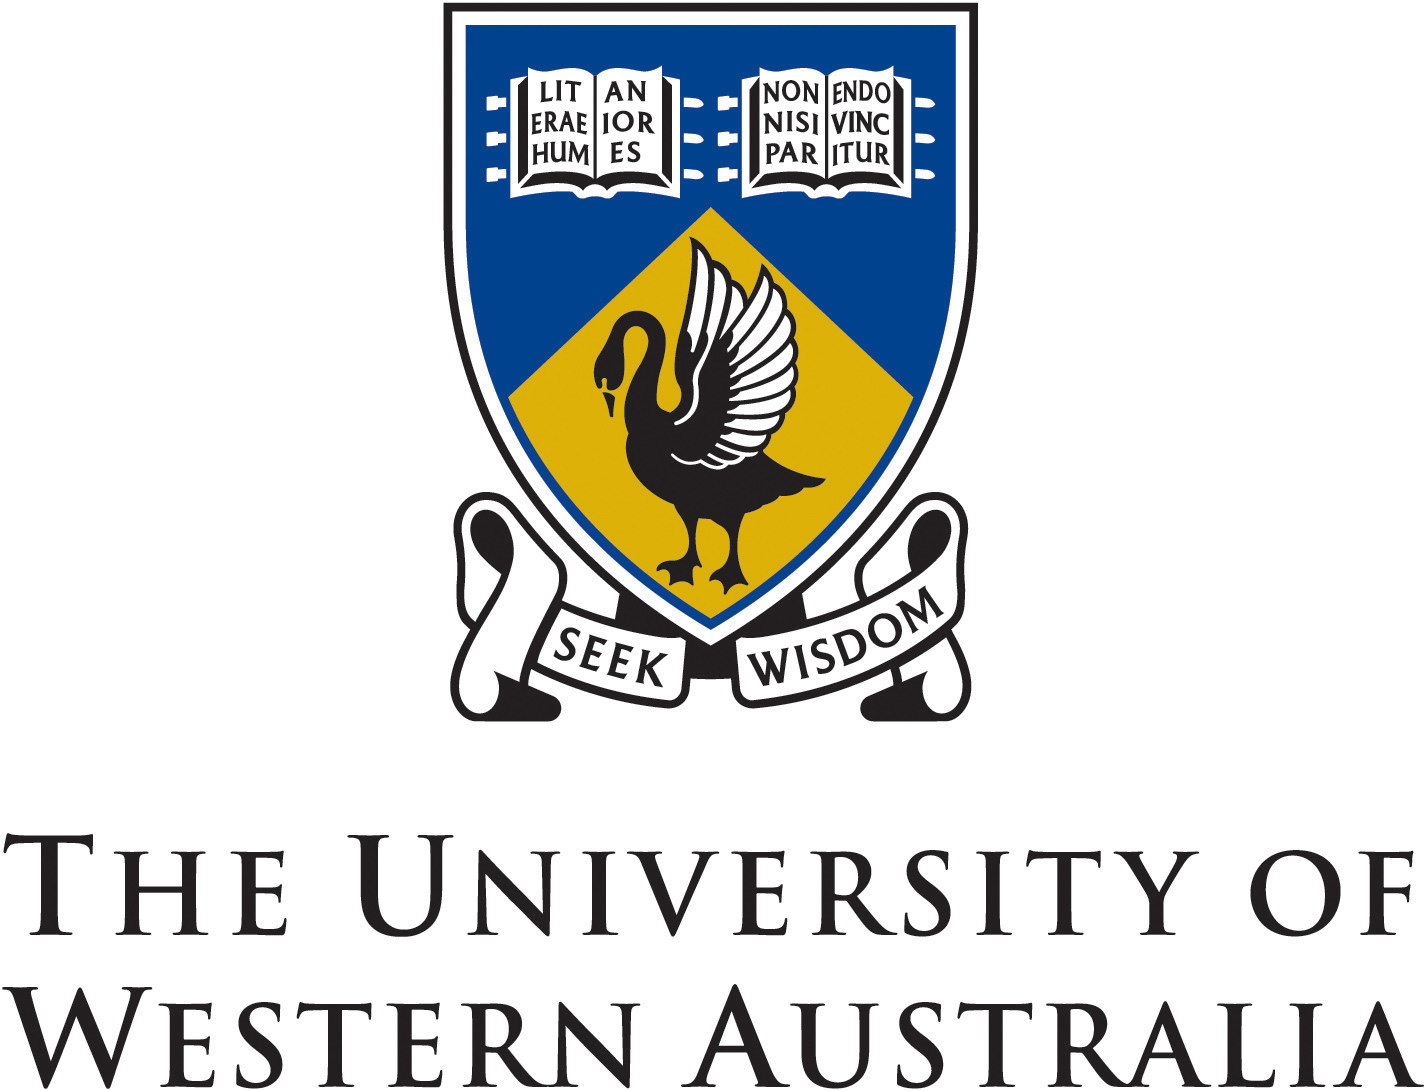 university of western australia phd thesis The university of western australia (uwa) was established by an act of the western australian parliament in february 1911, and began teaching students for the first time in 1913 it is the oldest university in the state of western australia and the only university in the state to be a member of.